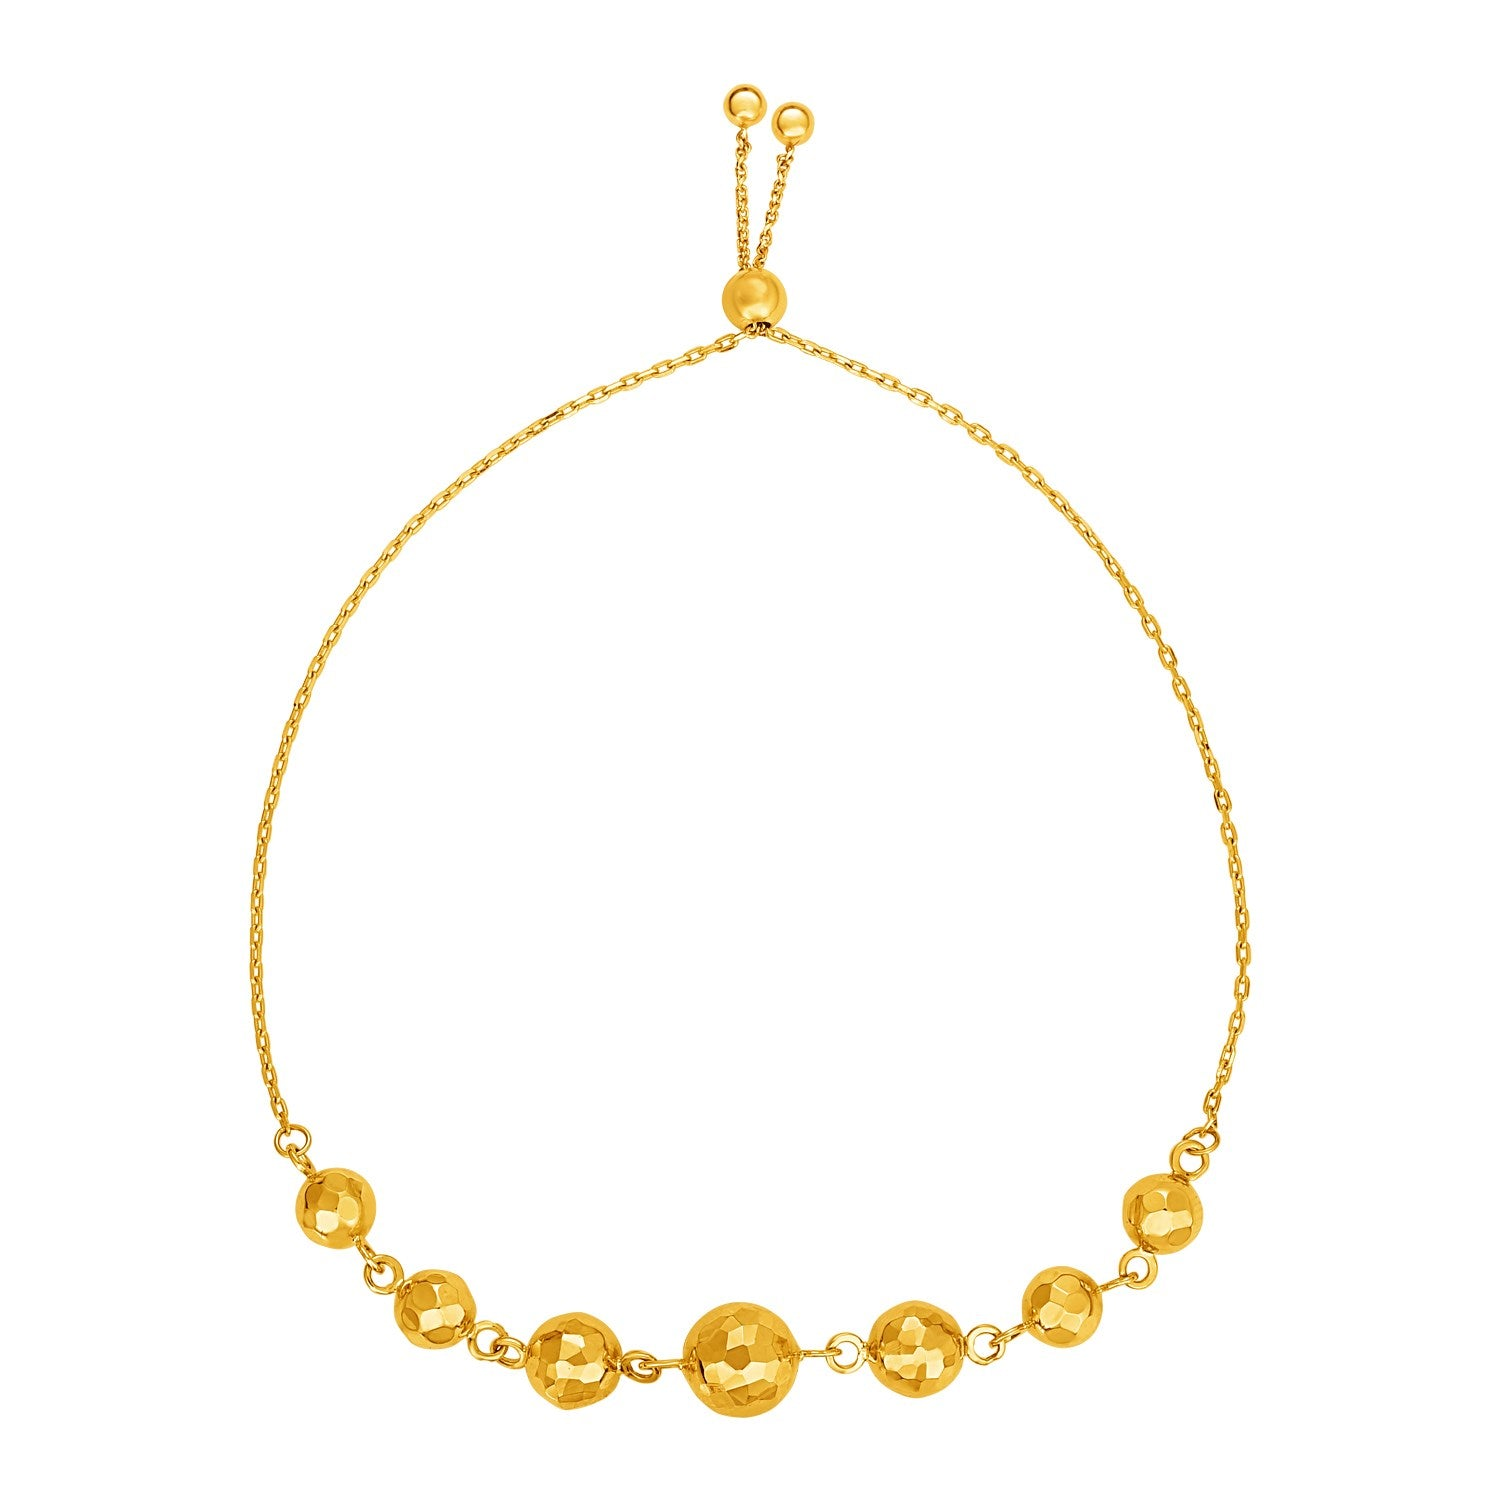 Adjustable Bracelet with Textured Spheres in 14k Yellow Gold